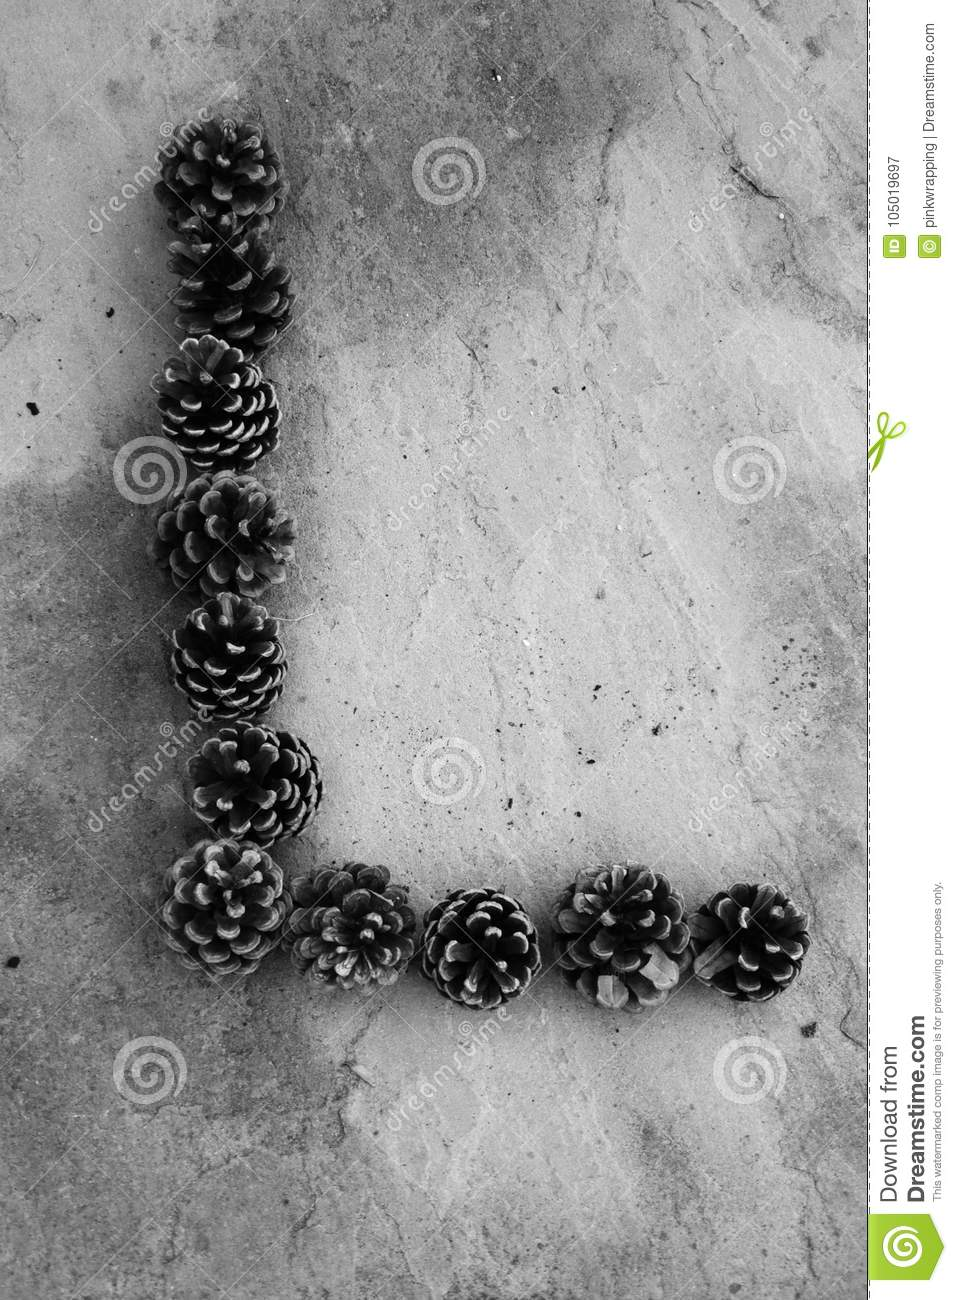 Black And White Letter L Made Out Of Pine Cones Stock Image